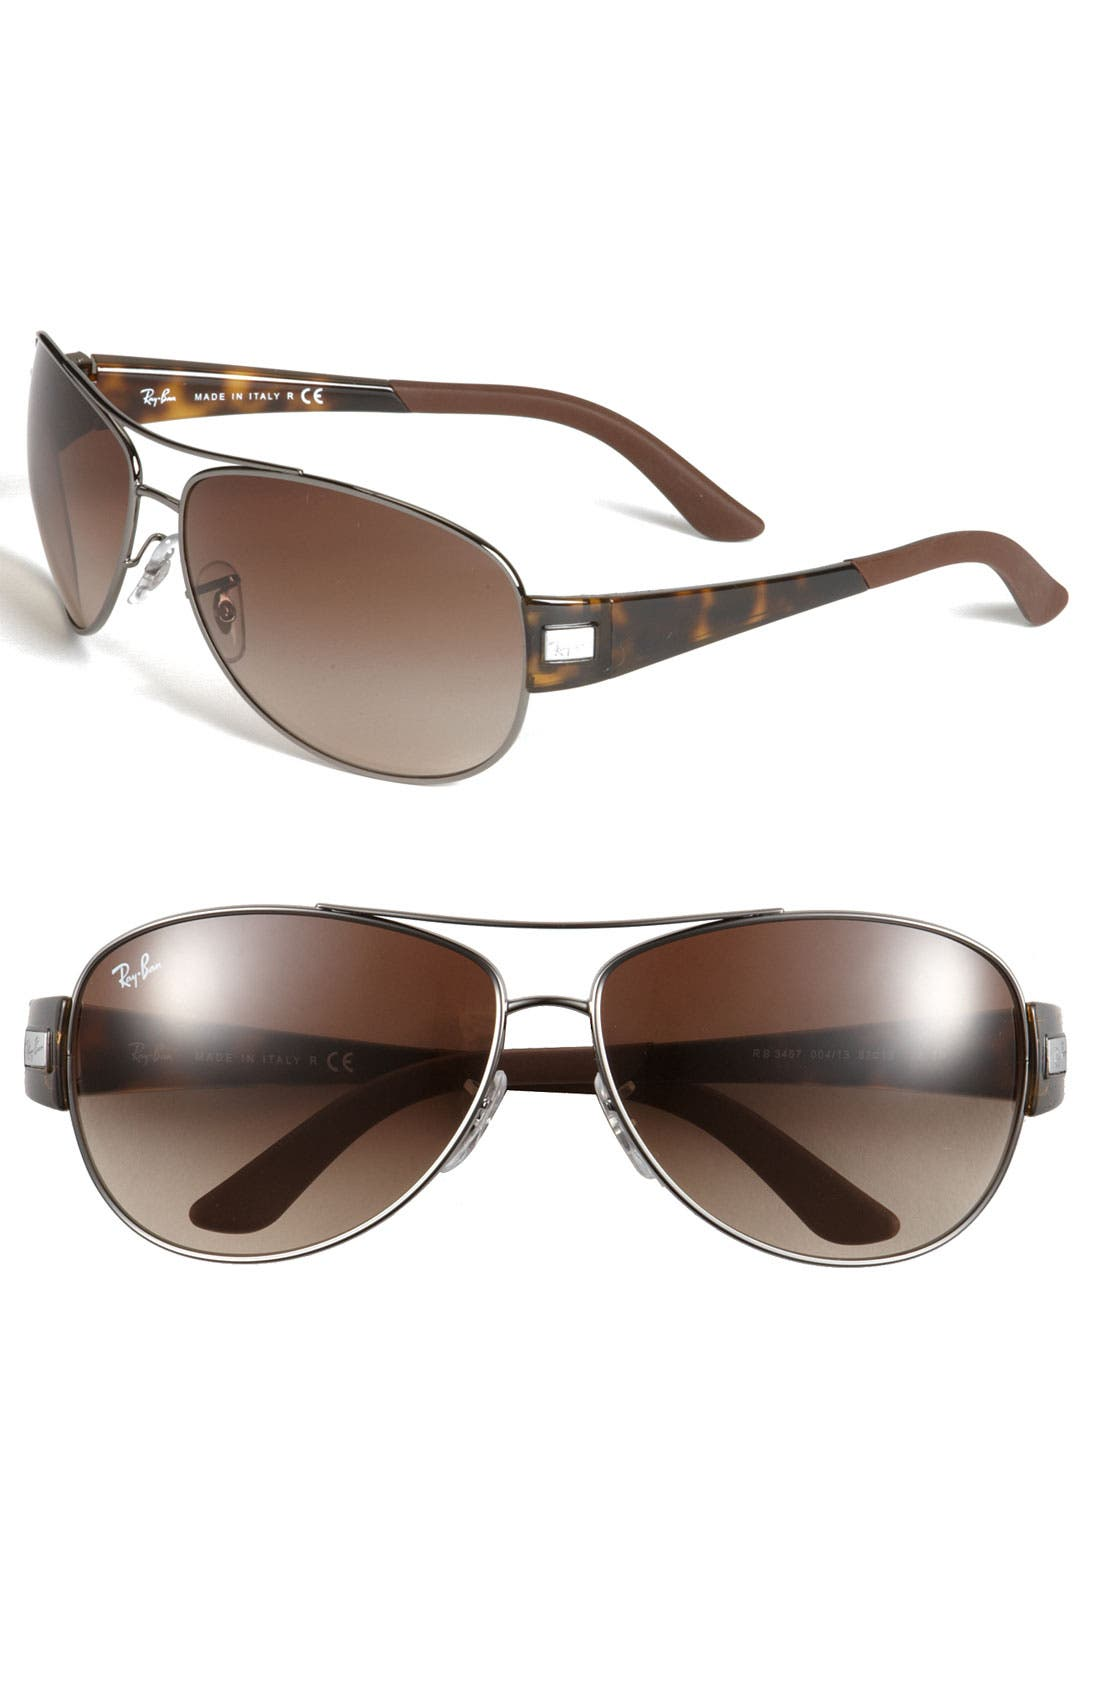 Main Image - Ray-Ban 'Morphed' 63mm Aviator Sunglasses